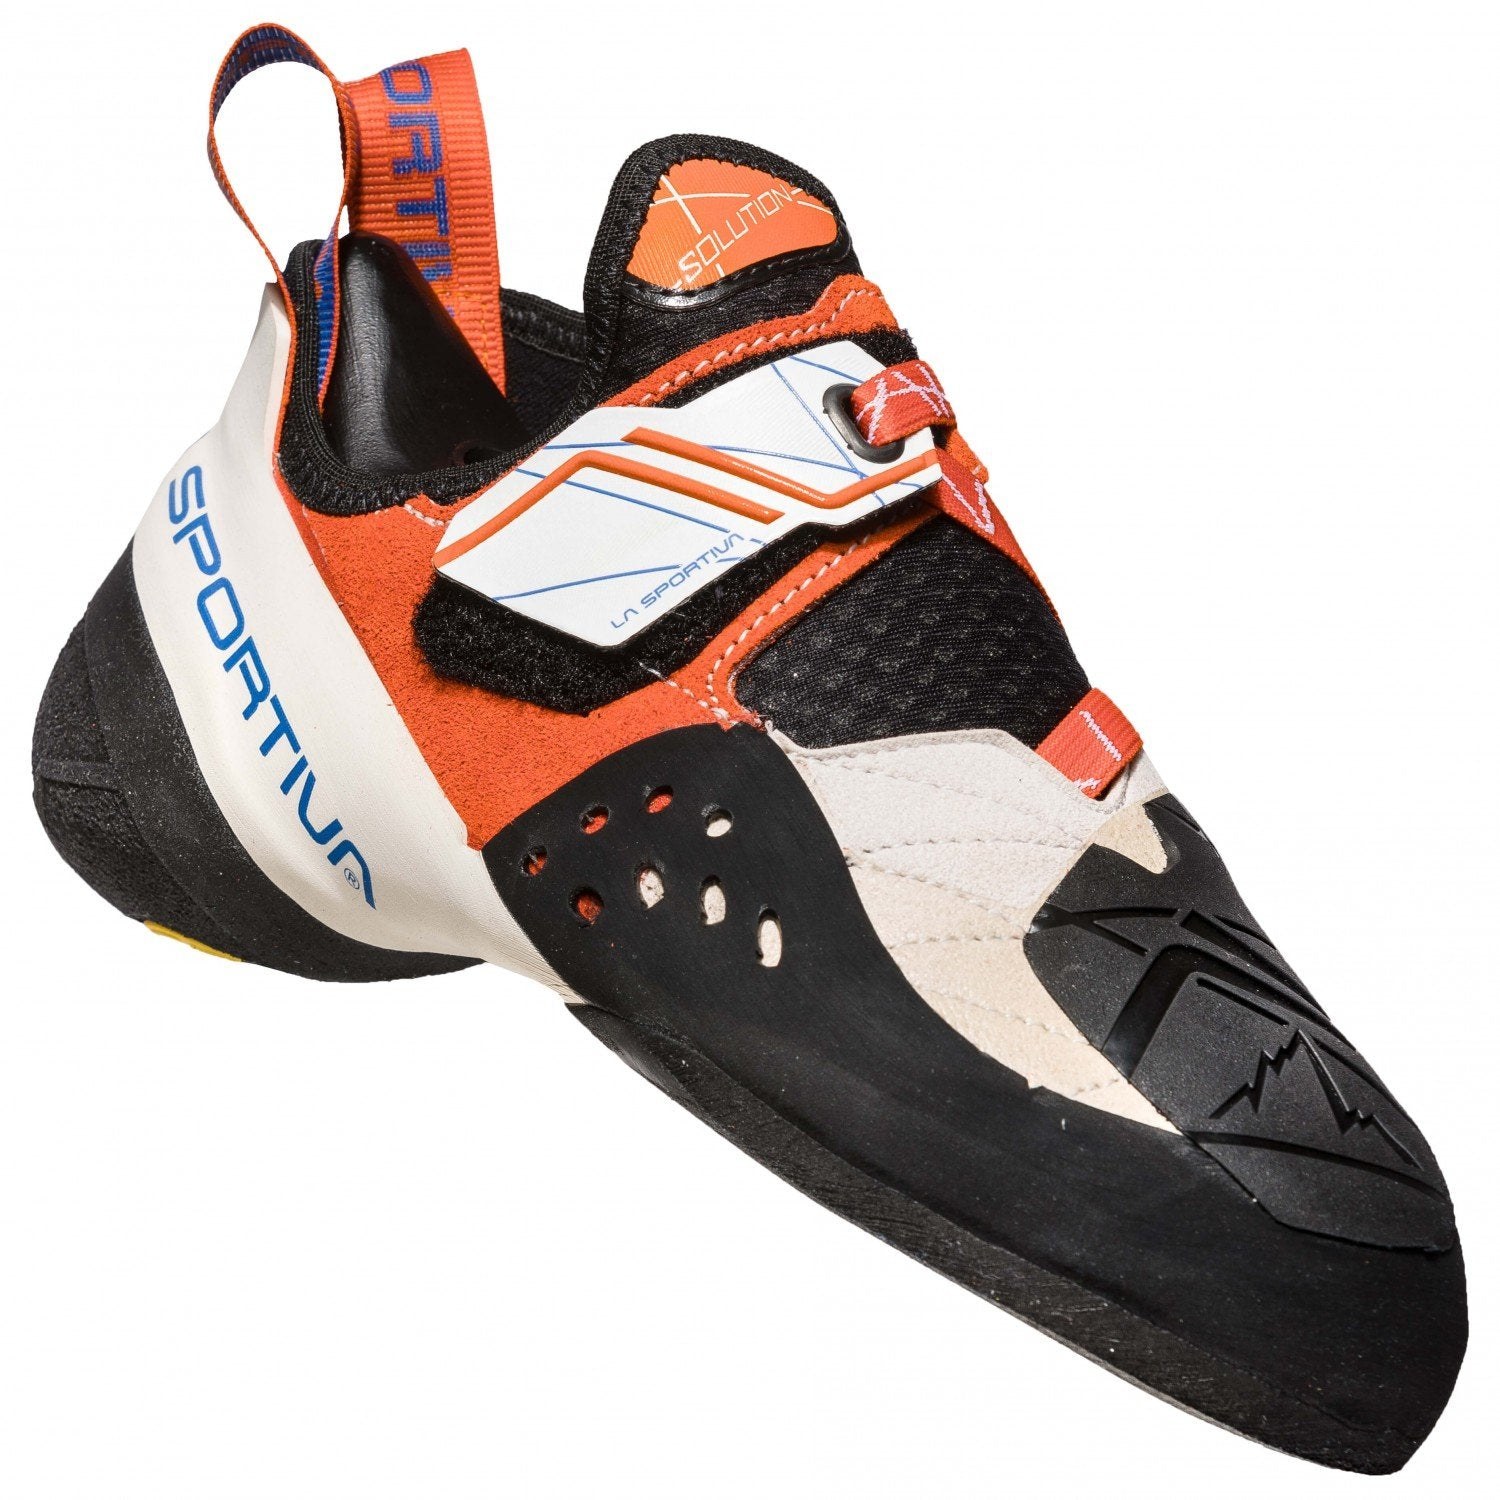 La Sportiva Solution Women's climbing shoe, in black, White and orange colour as seen from the side